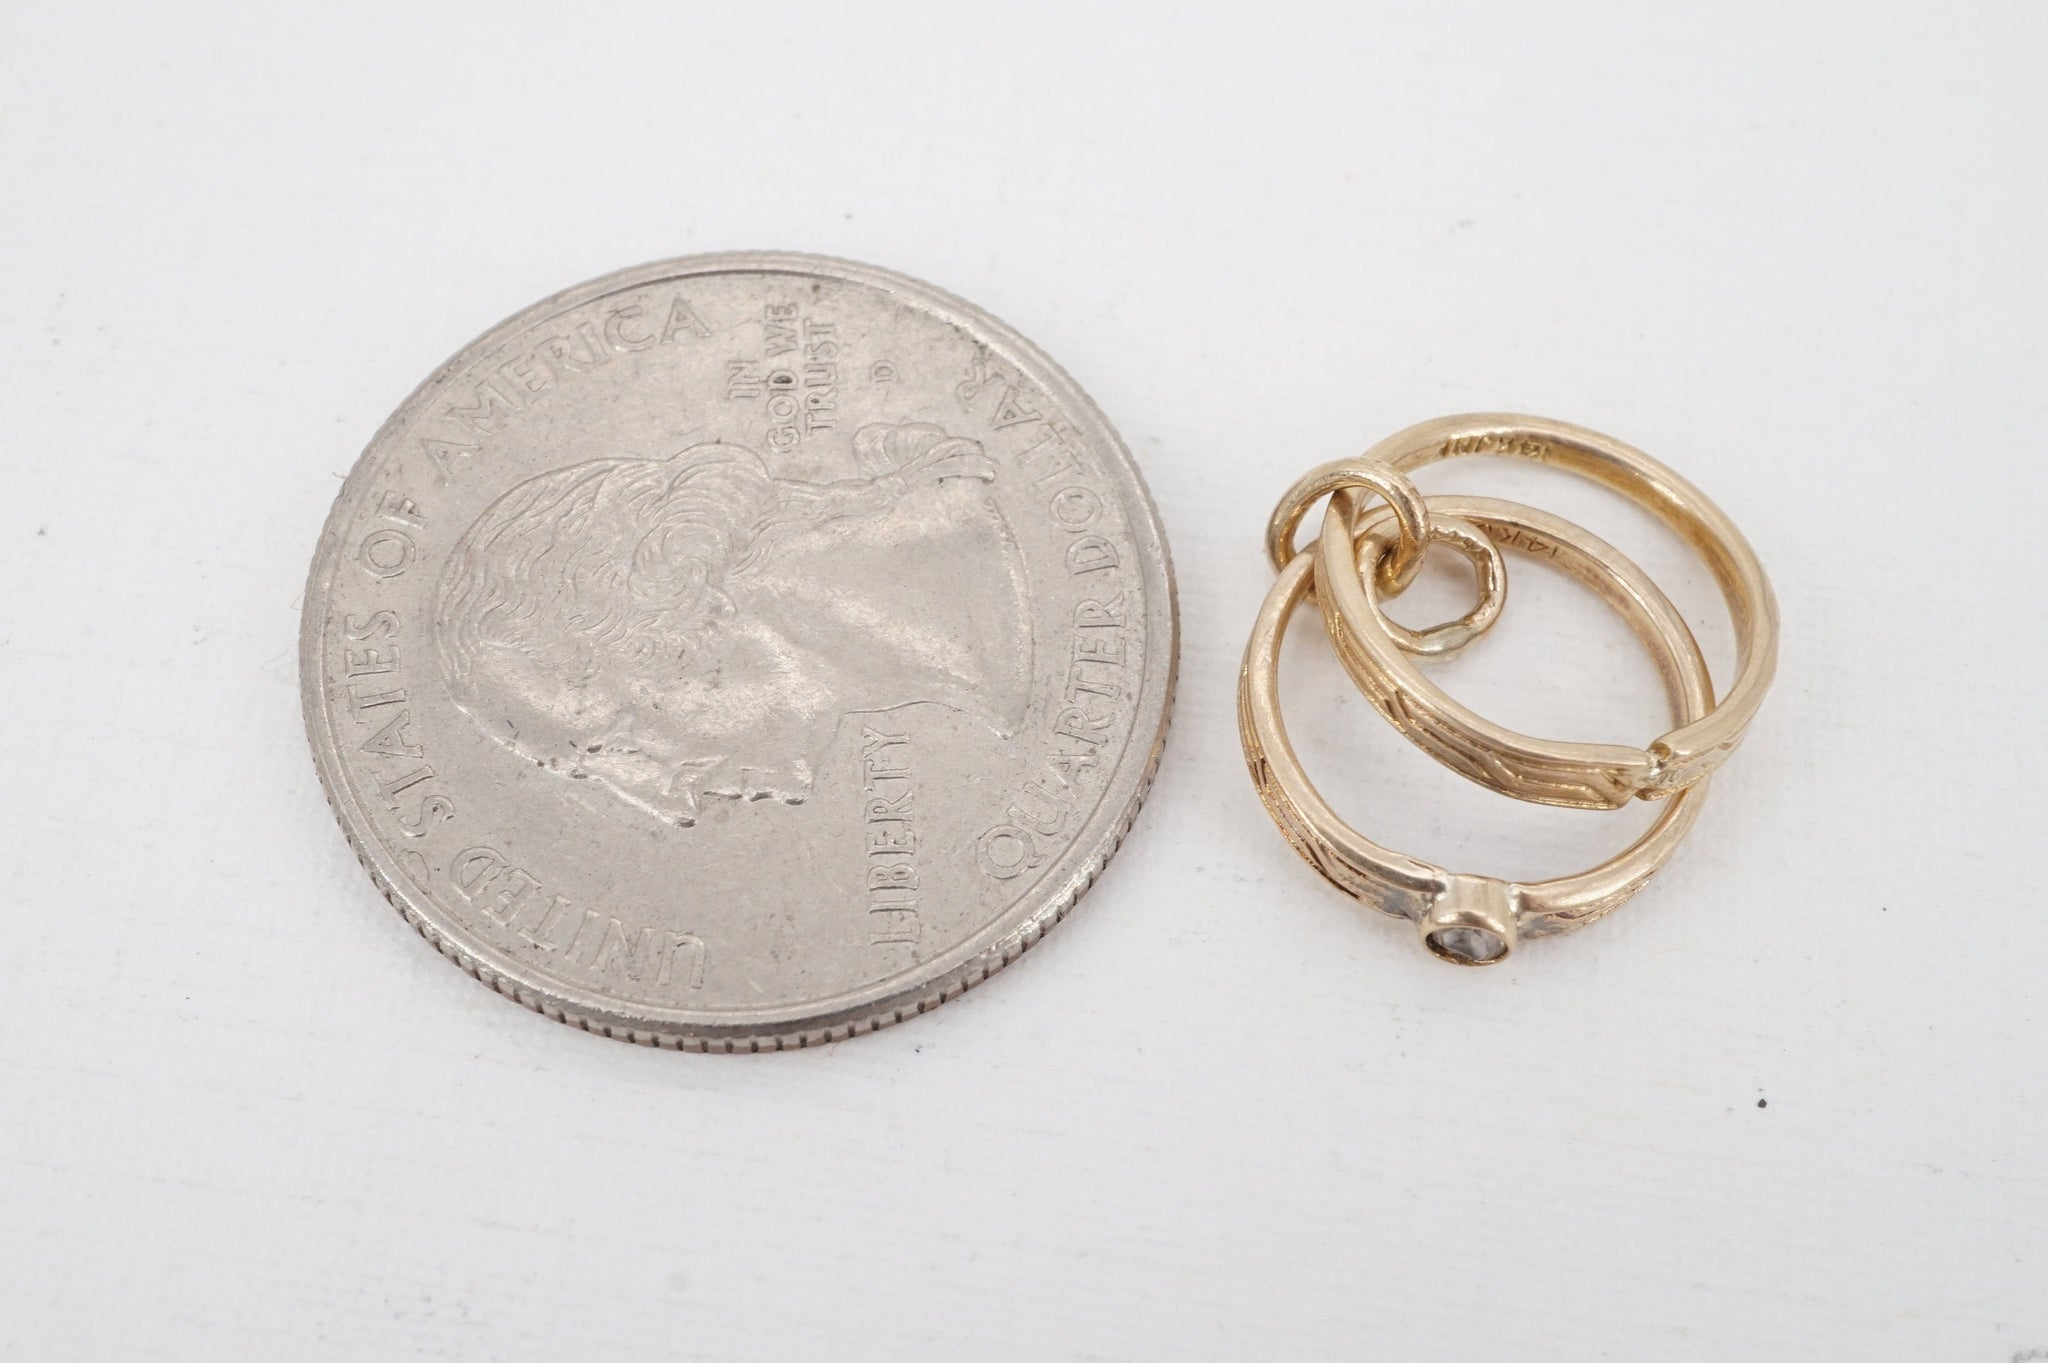 vintage JMF 14k gold glass wedding ring set charm - ww